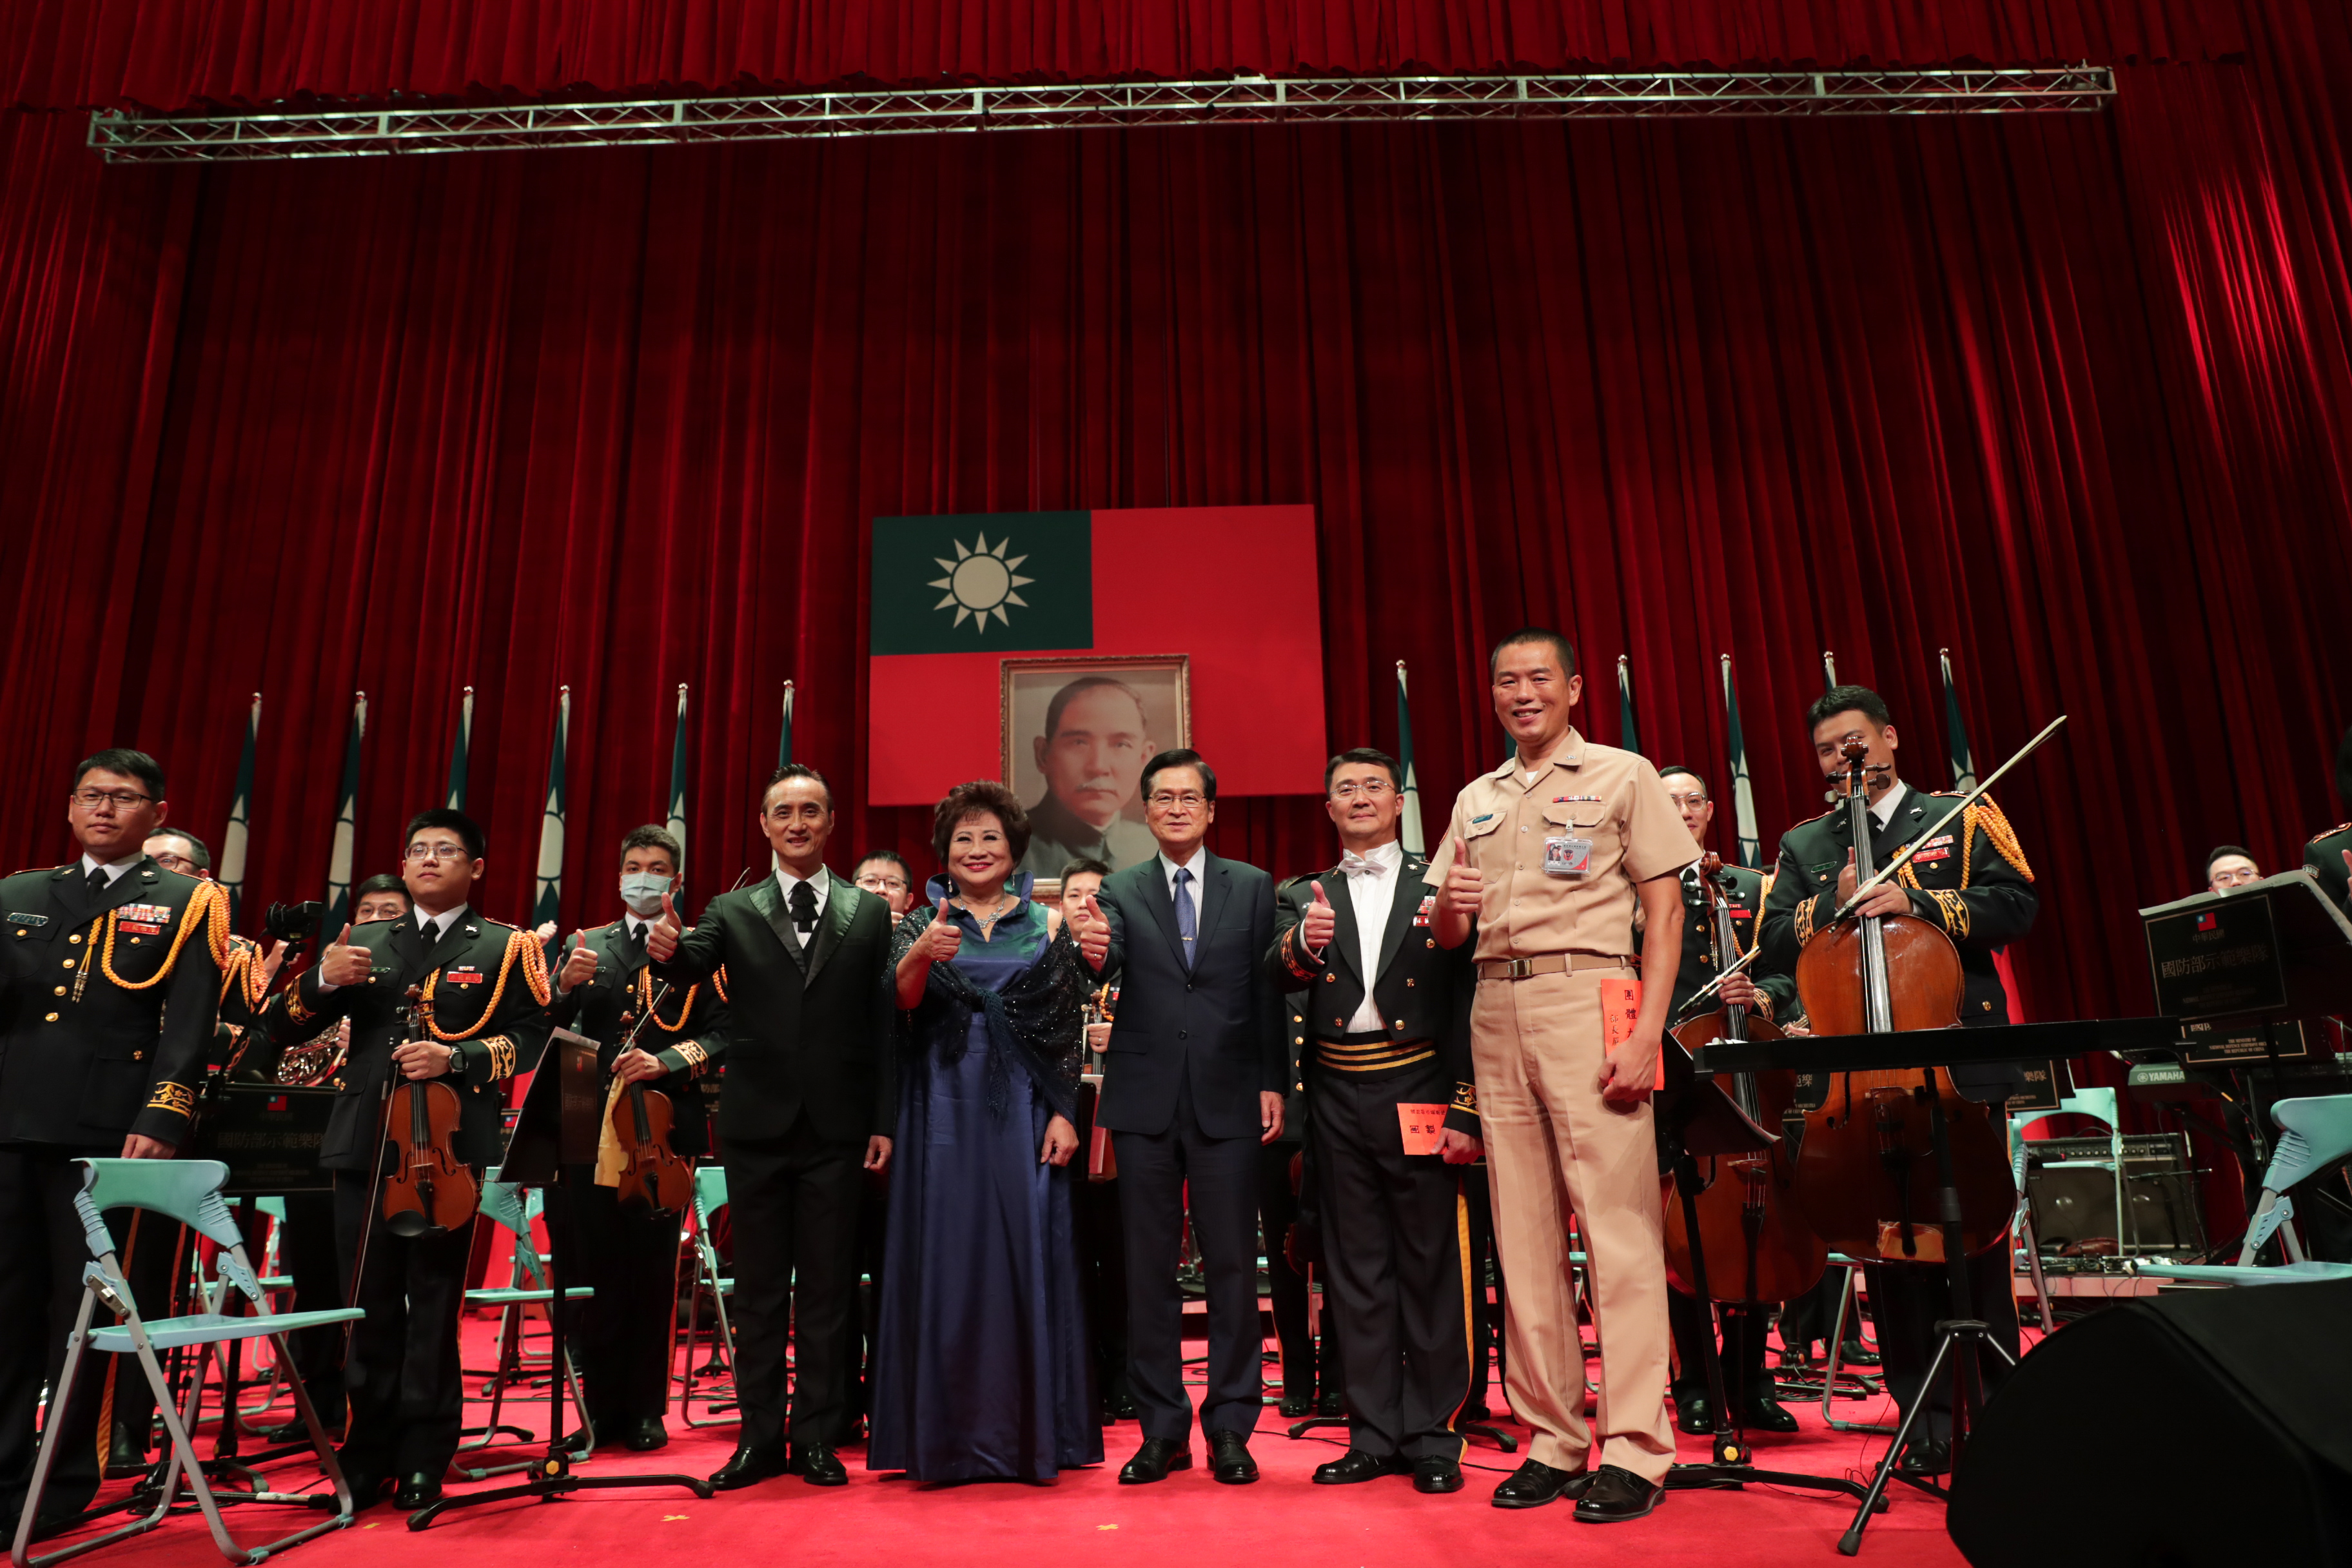 Armed Forces Day Concert Entertains the Military and Public